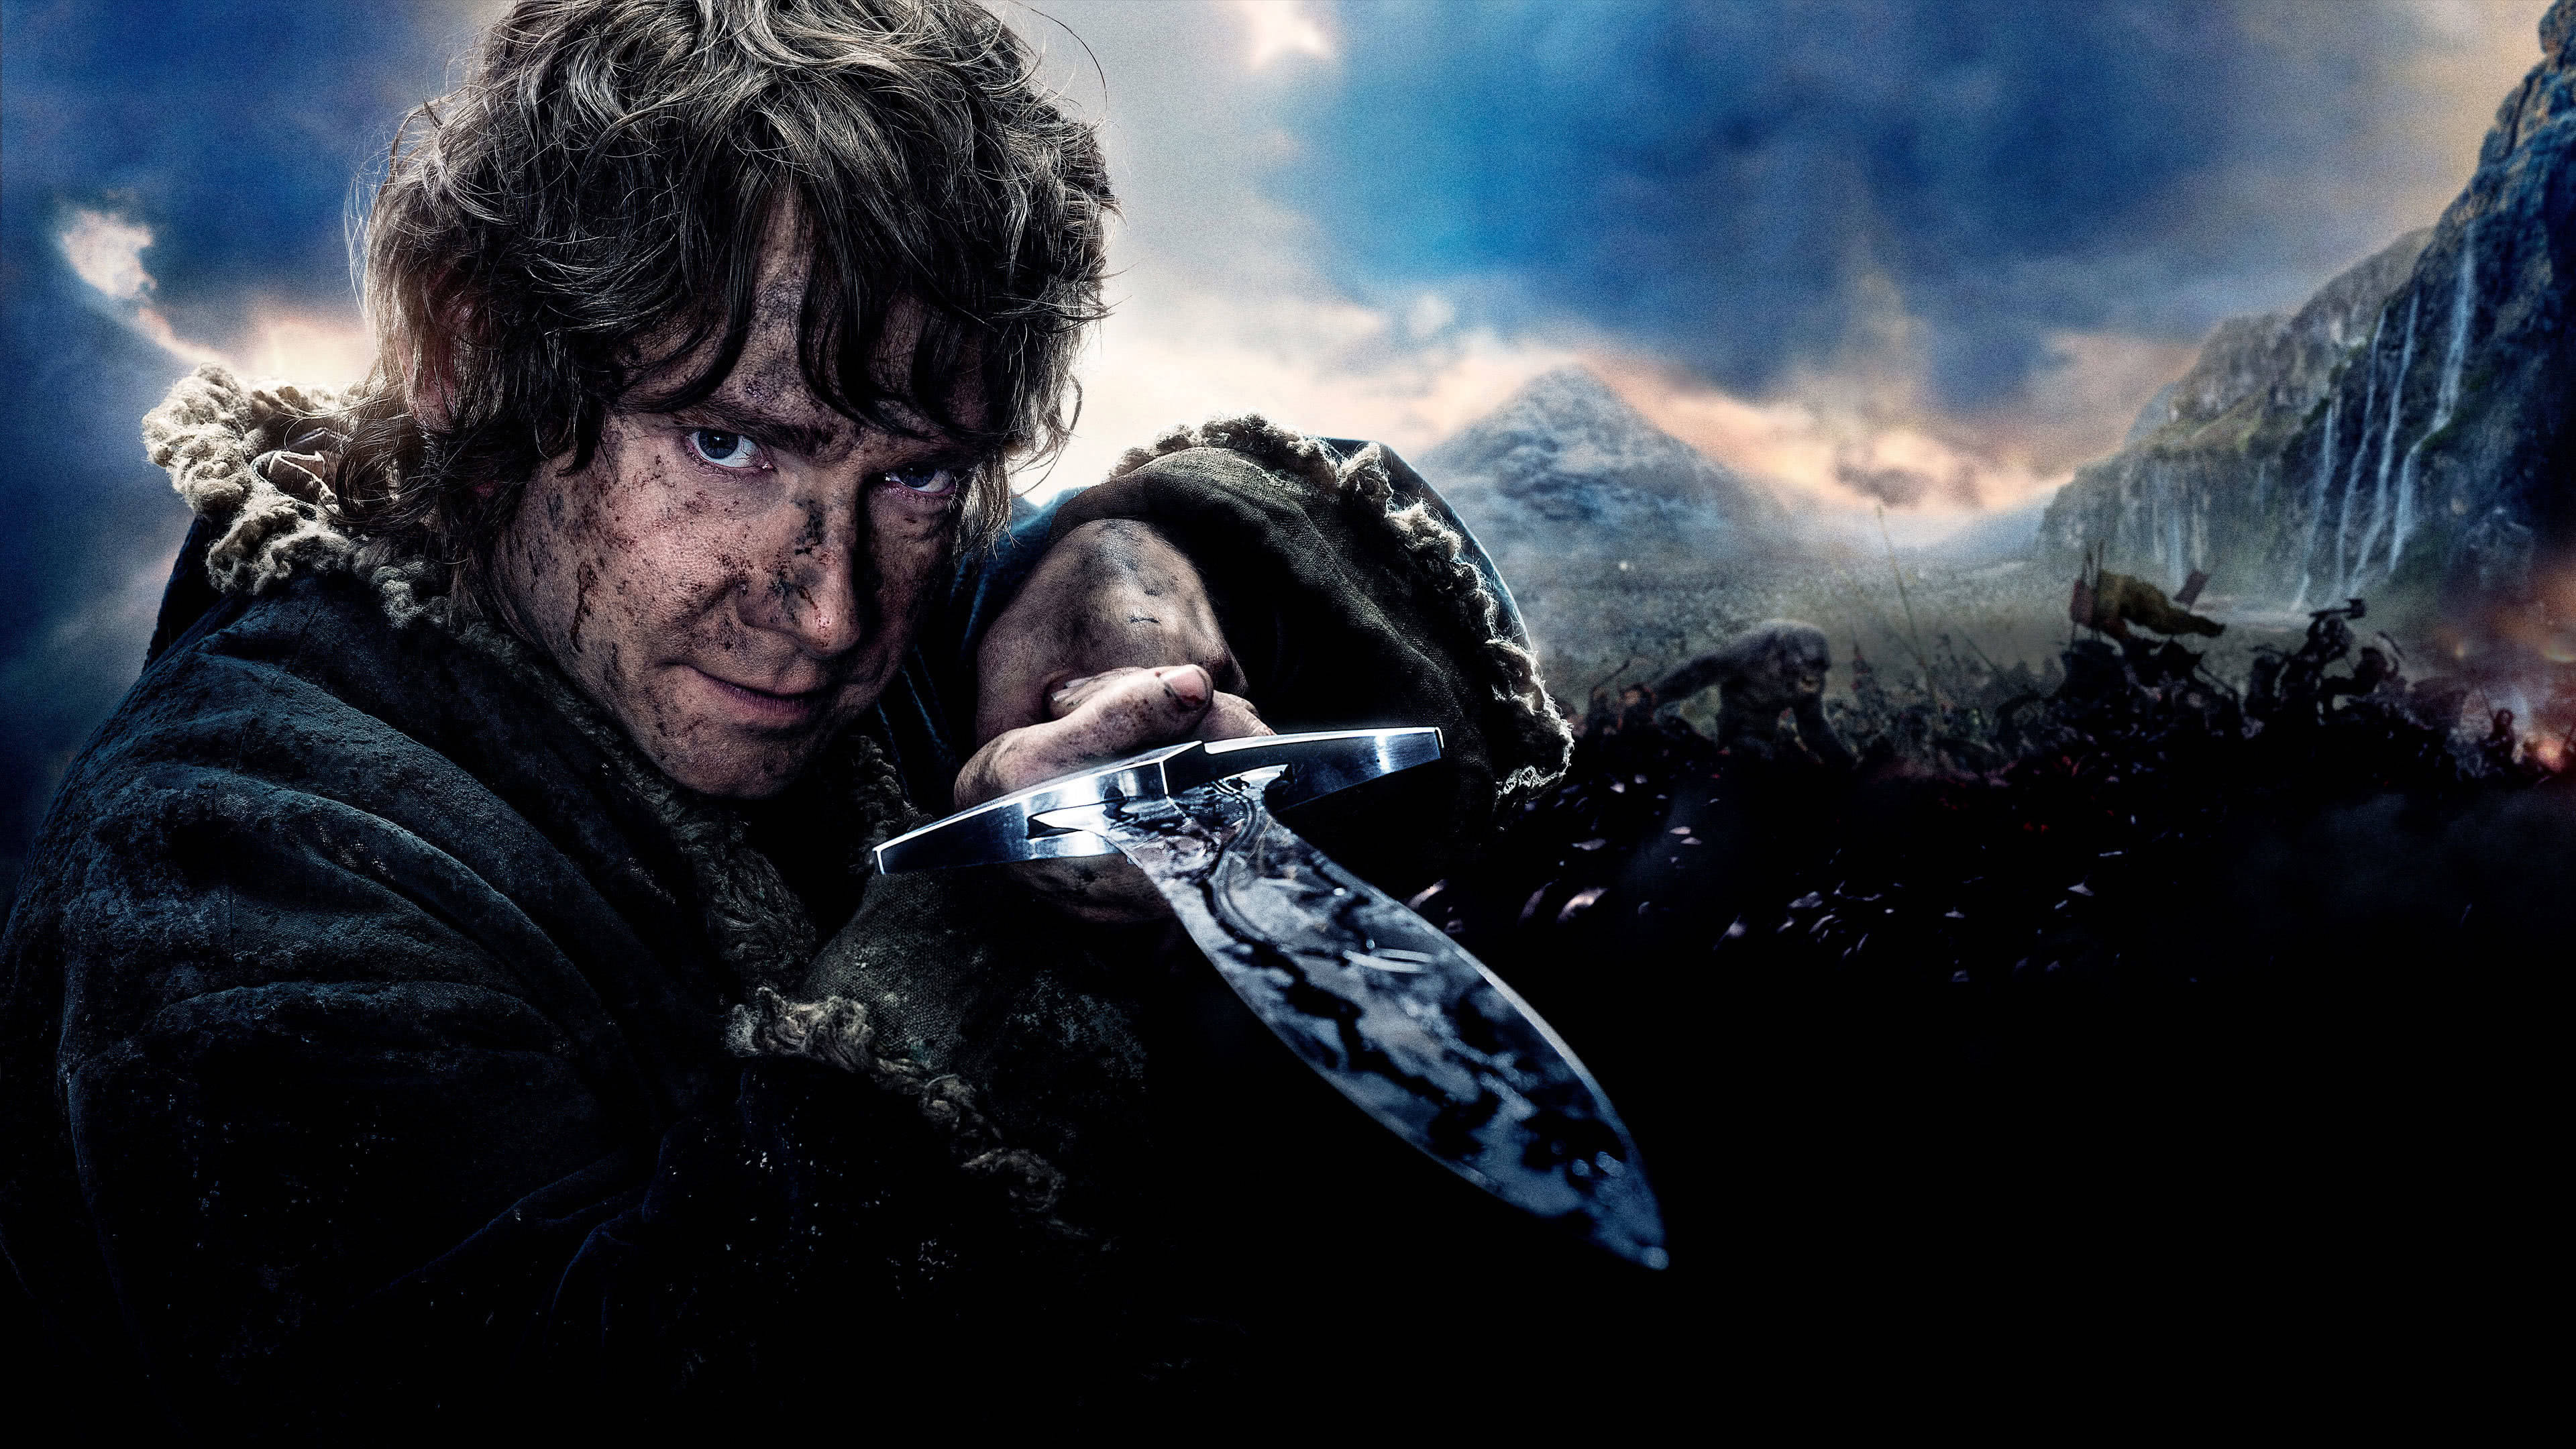 the hobbit bilbo baggins sting sword uhd 4k wallpaper